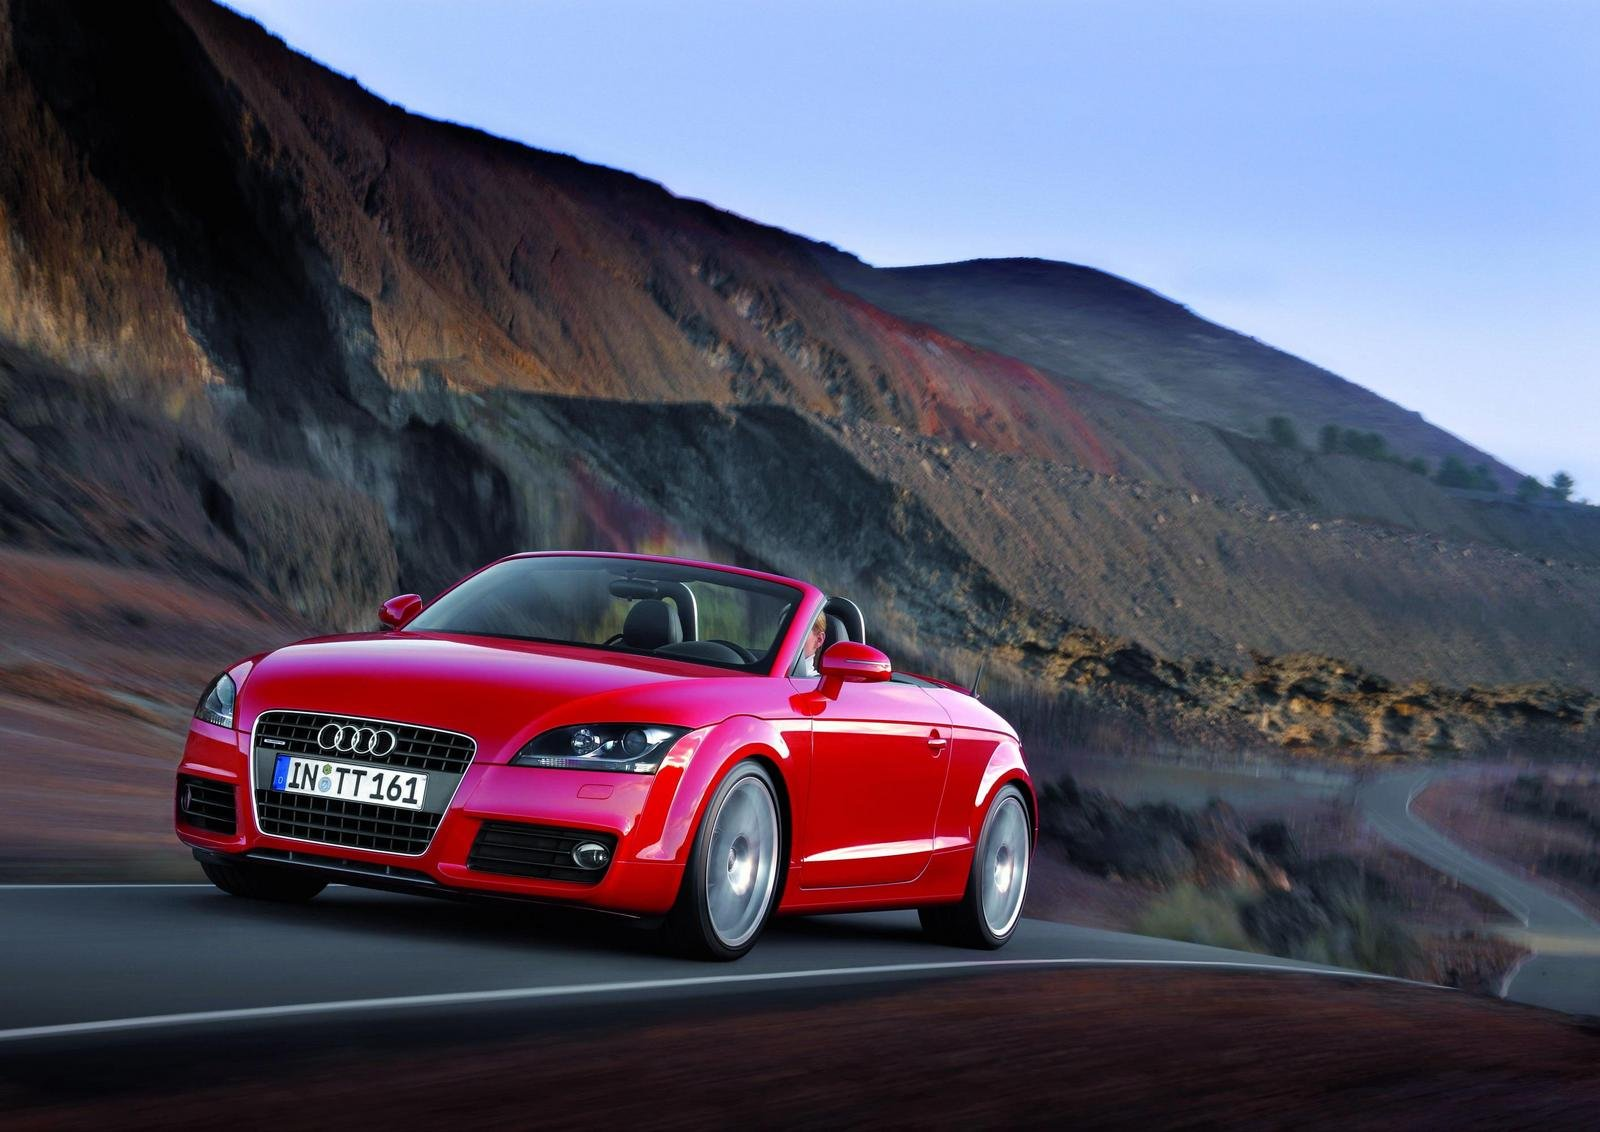 2008 audi tt 2 0 tdi quattro picture 283937 car review top speed. Black Bedroom Furniture Sets. Home Design Ideas